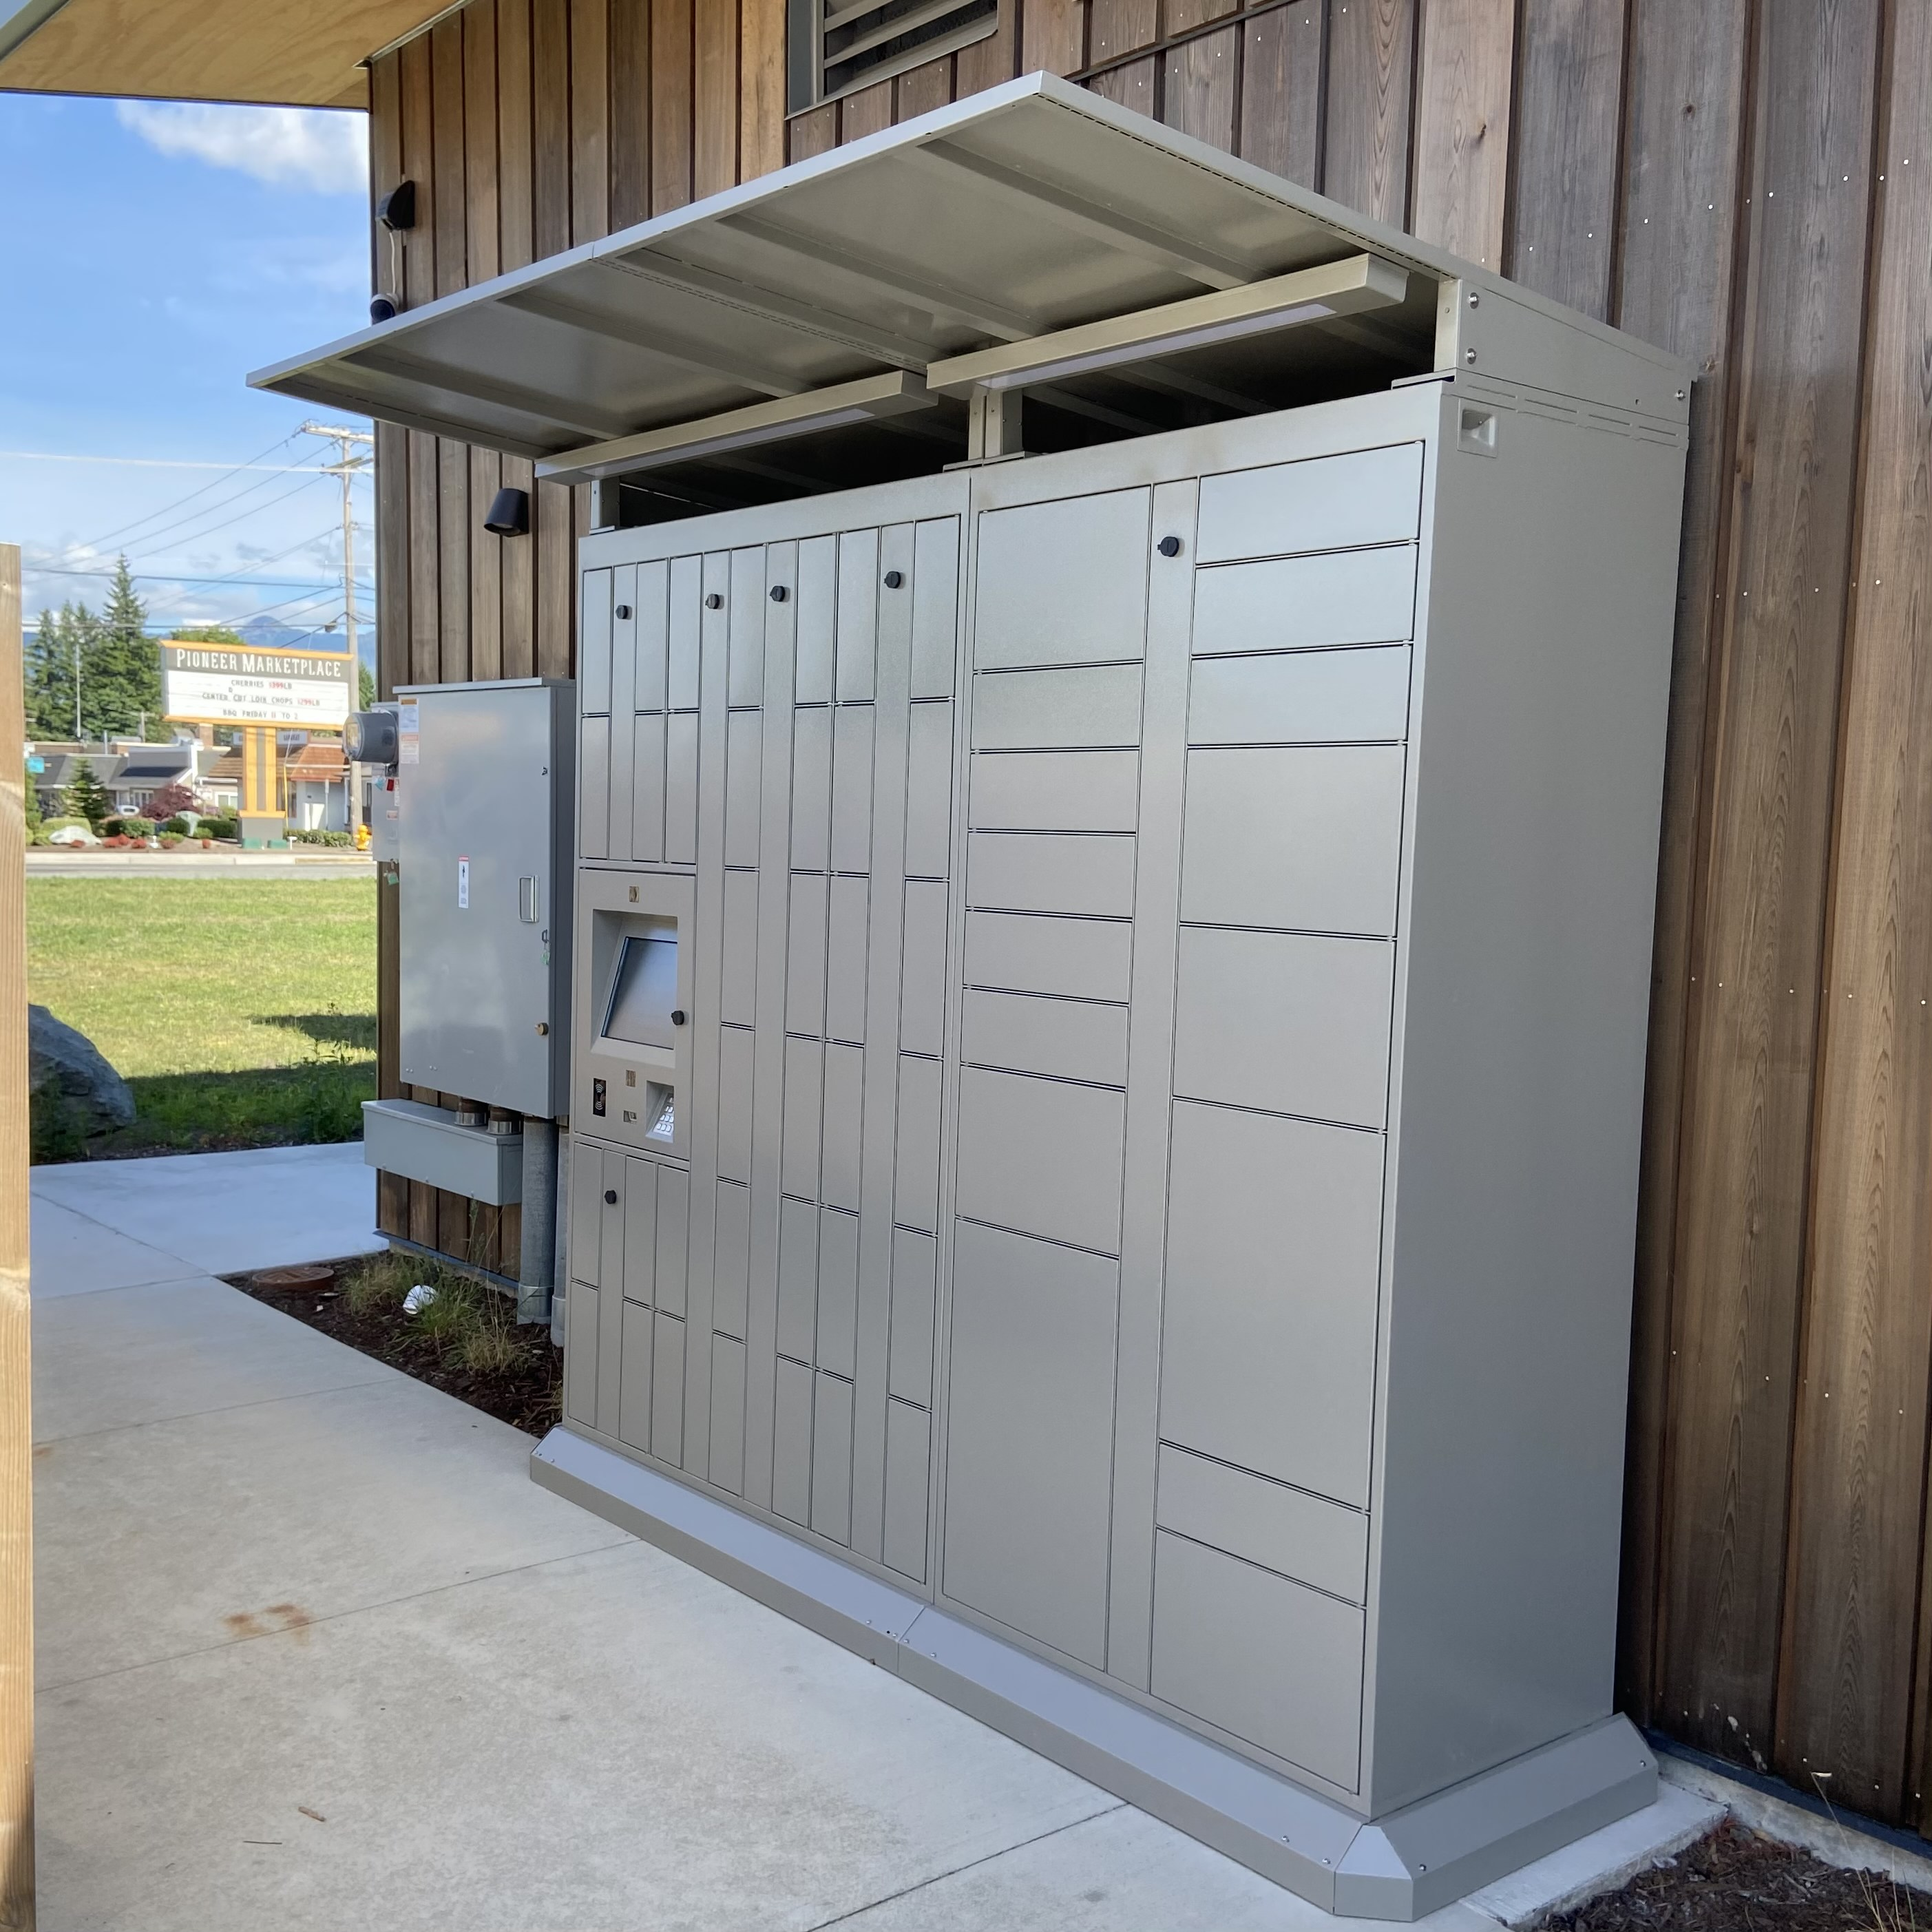 After-hours library lockers